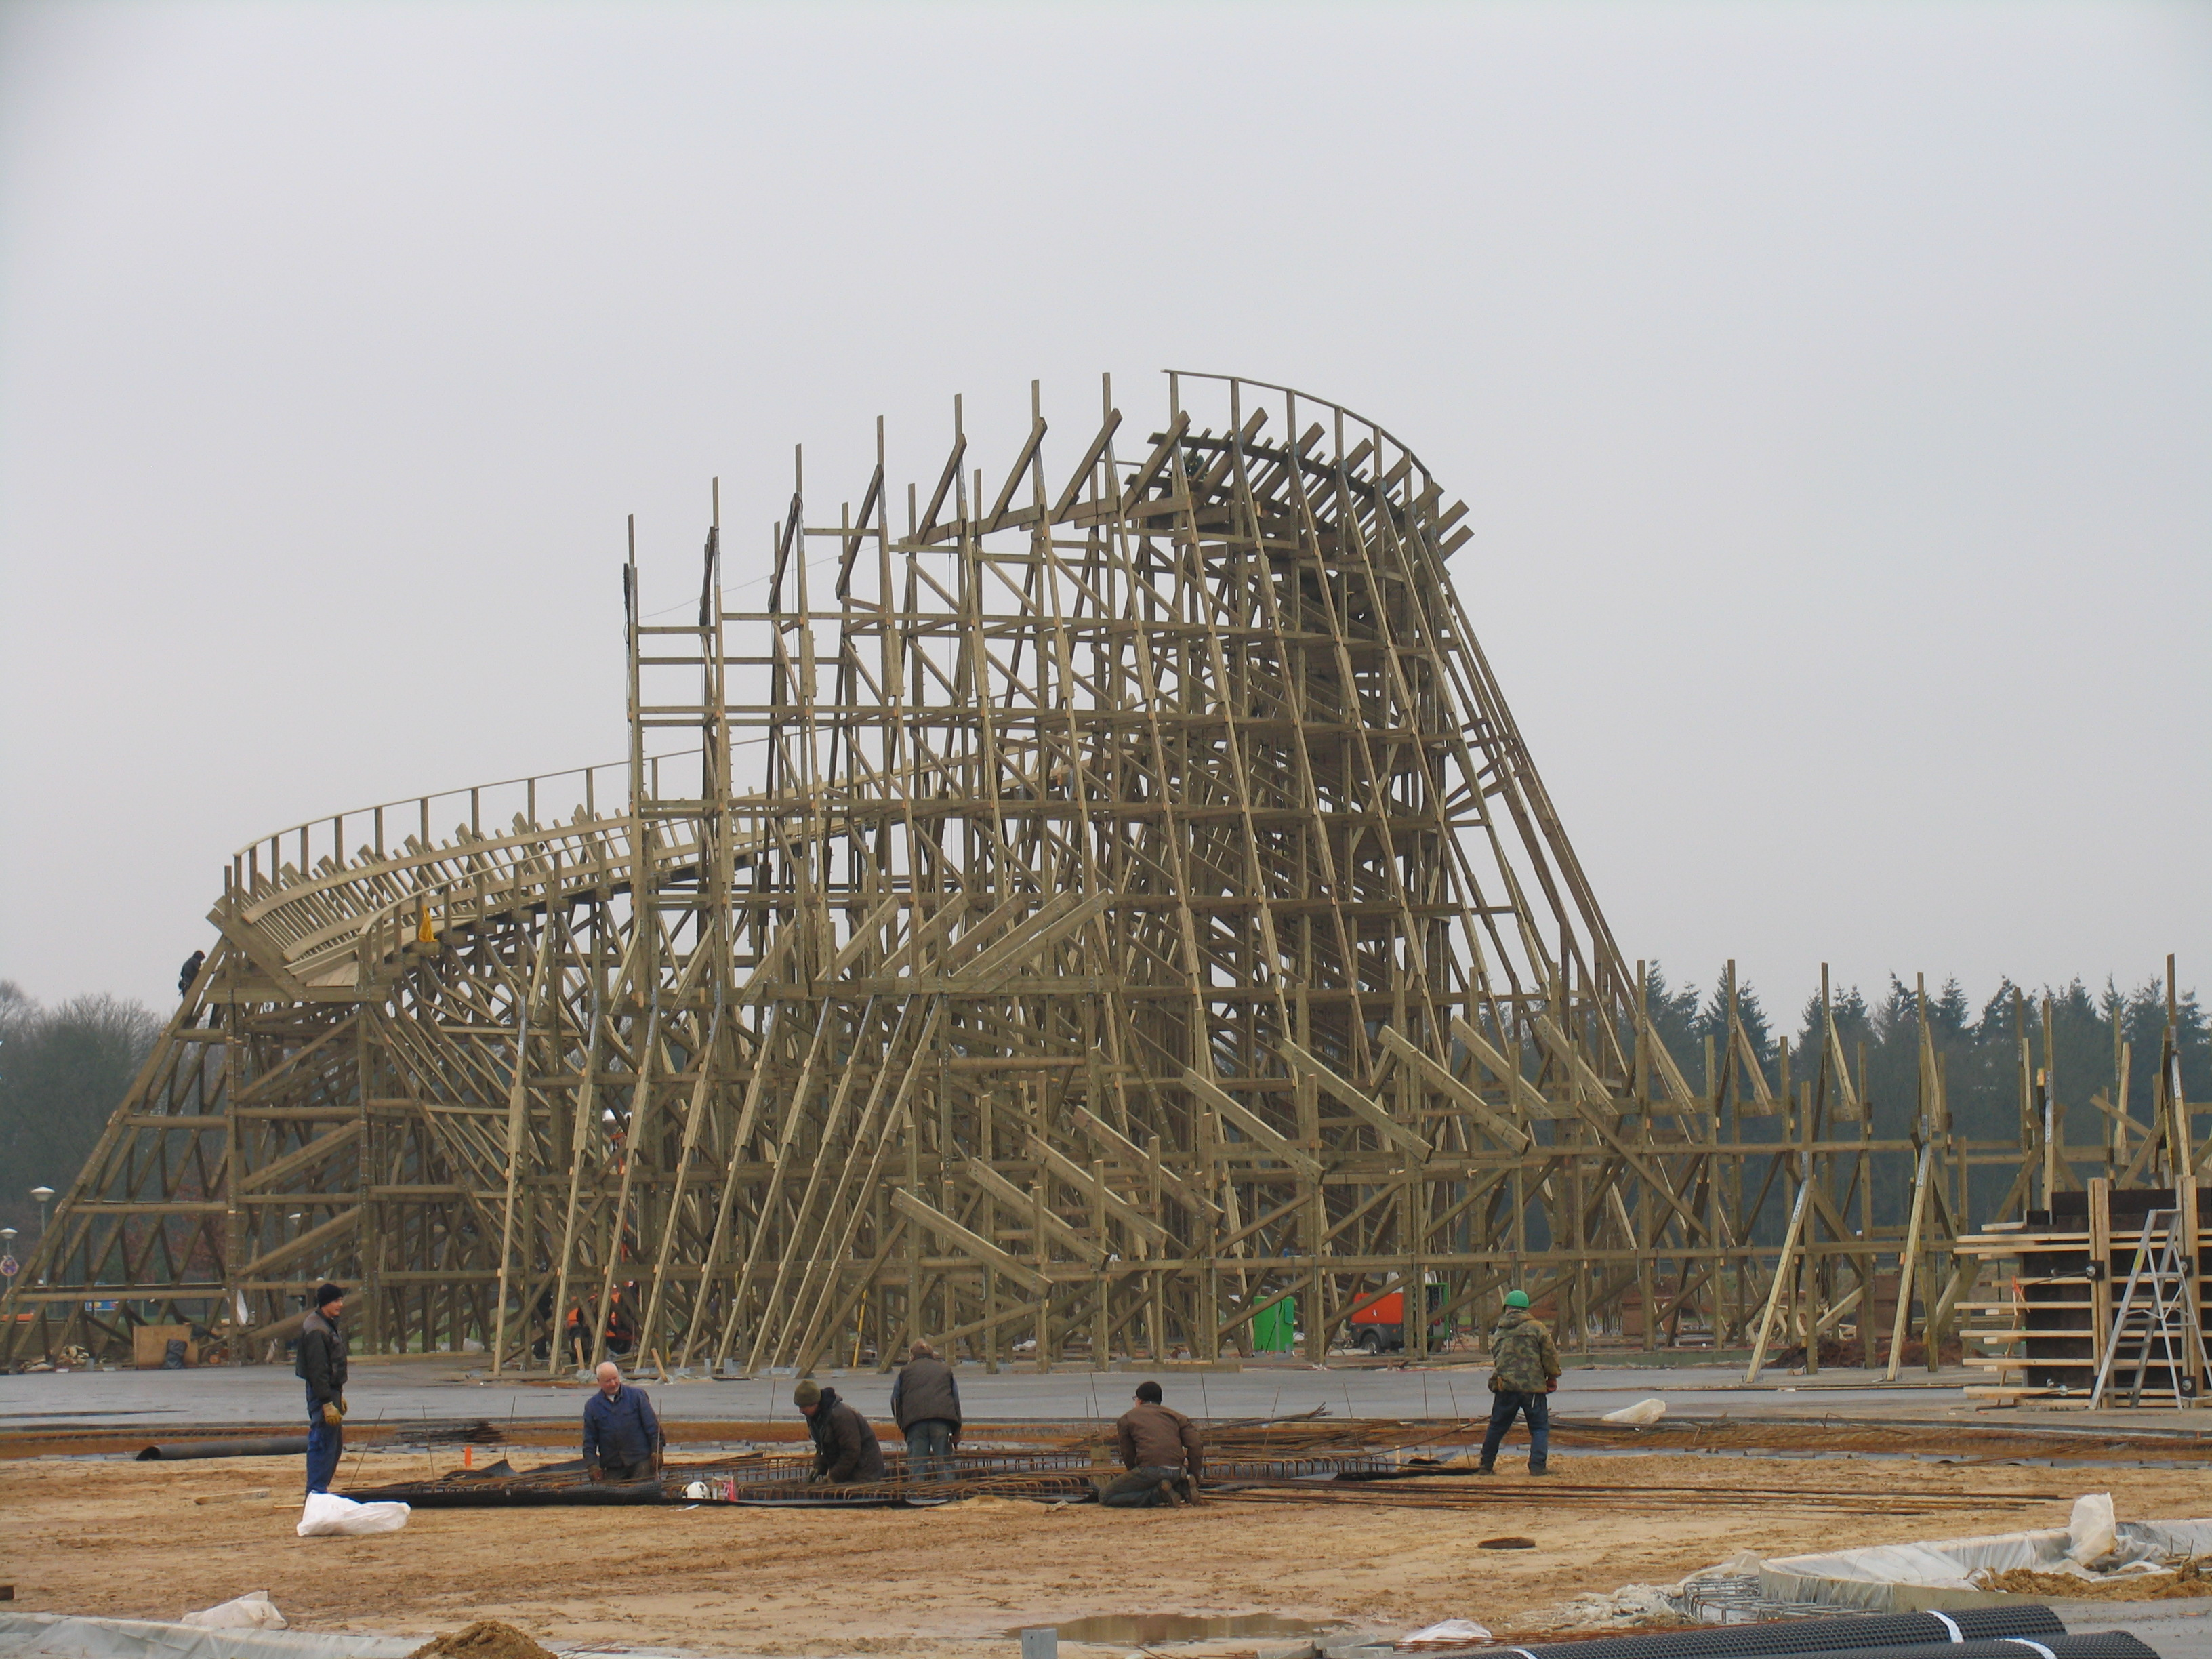 Toverland Troy Costr Uin Wikipedia